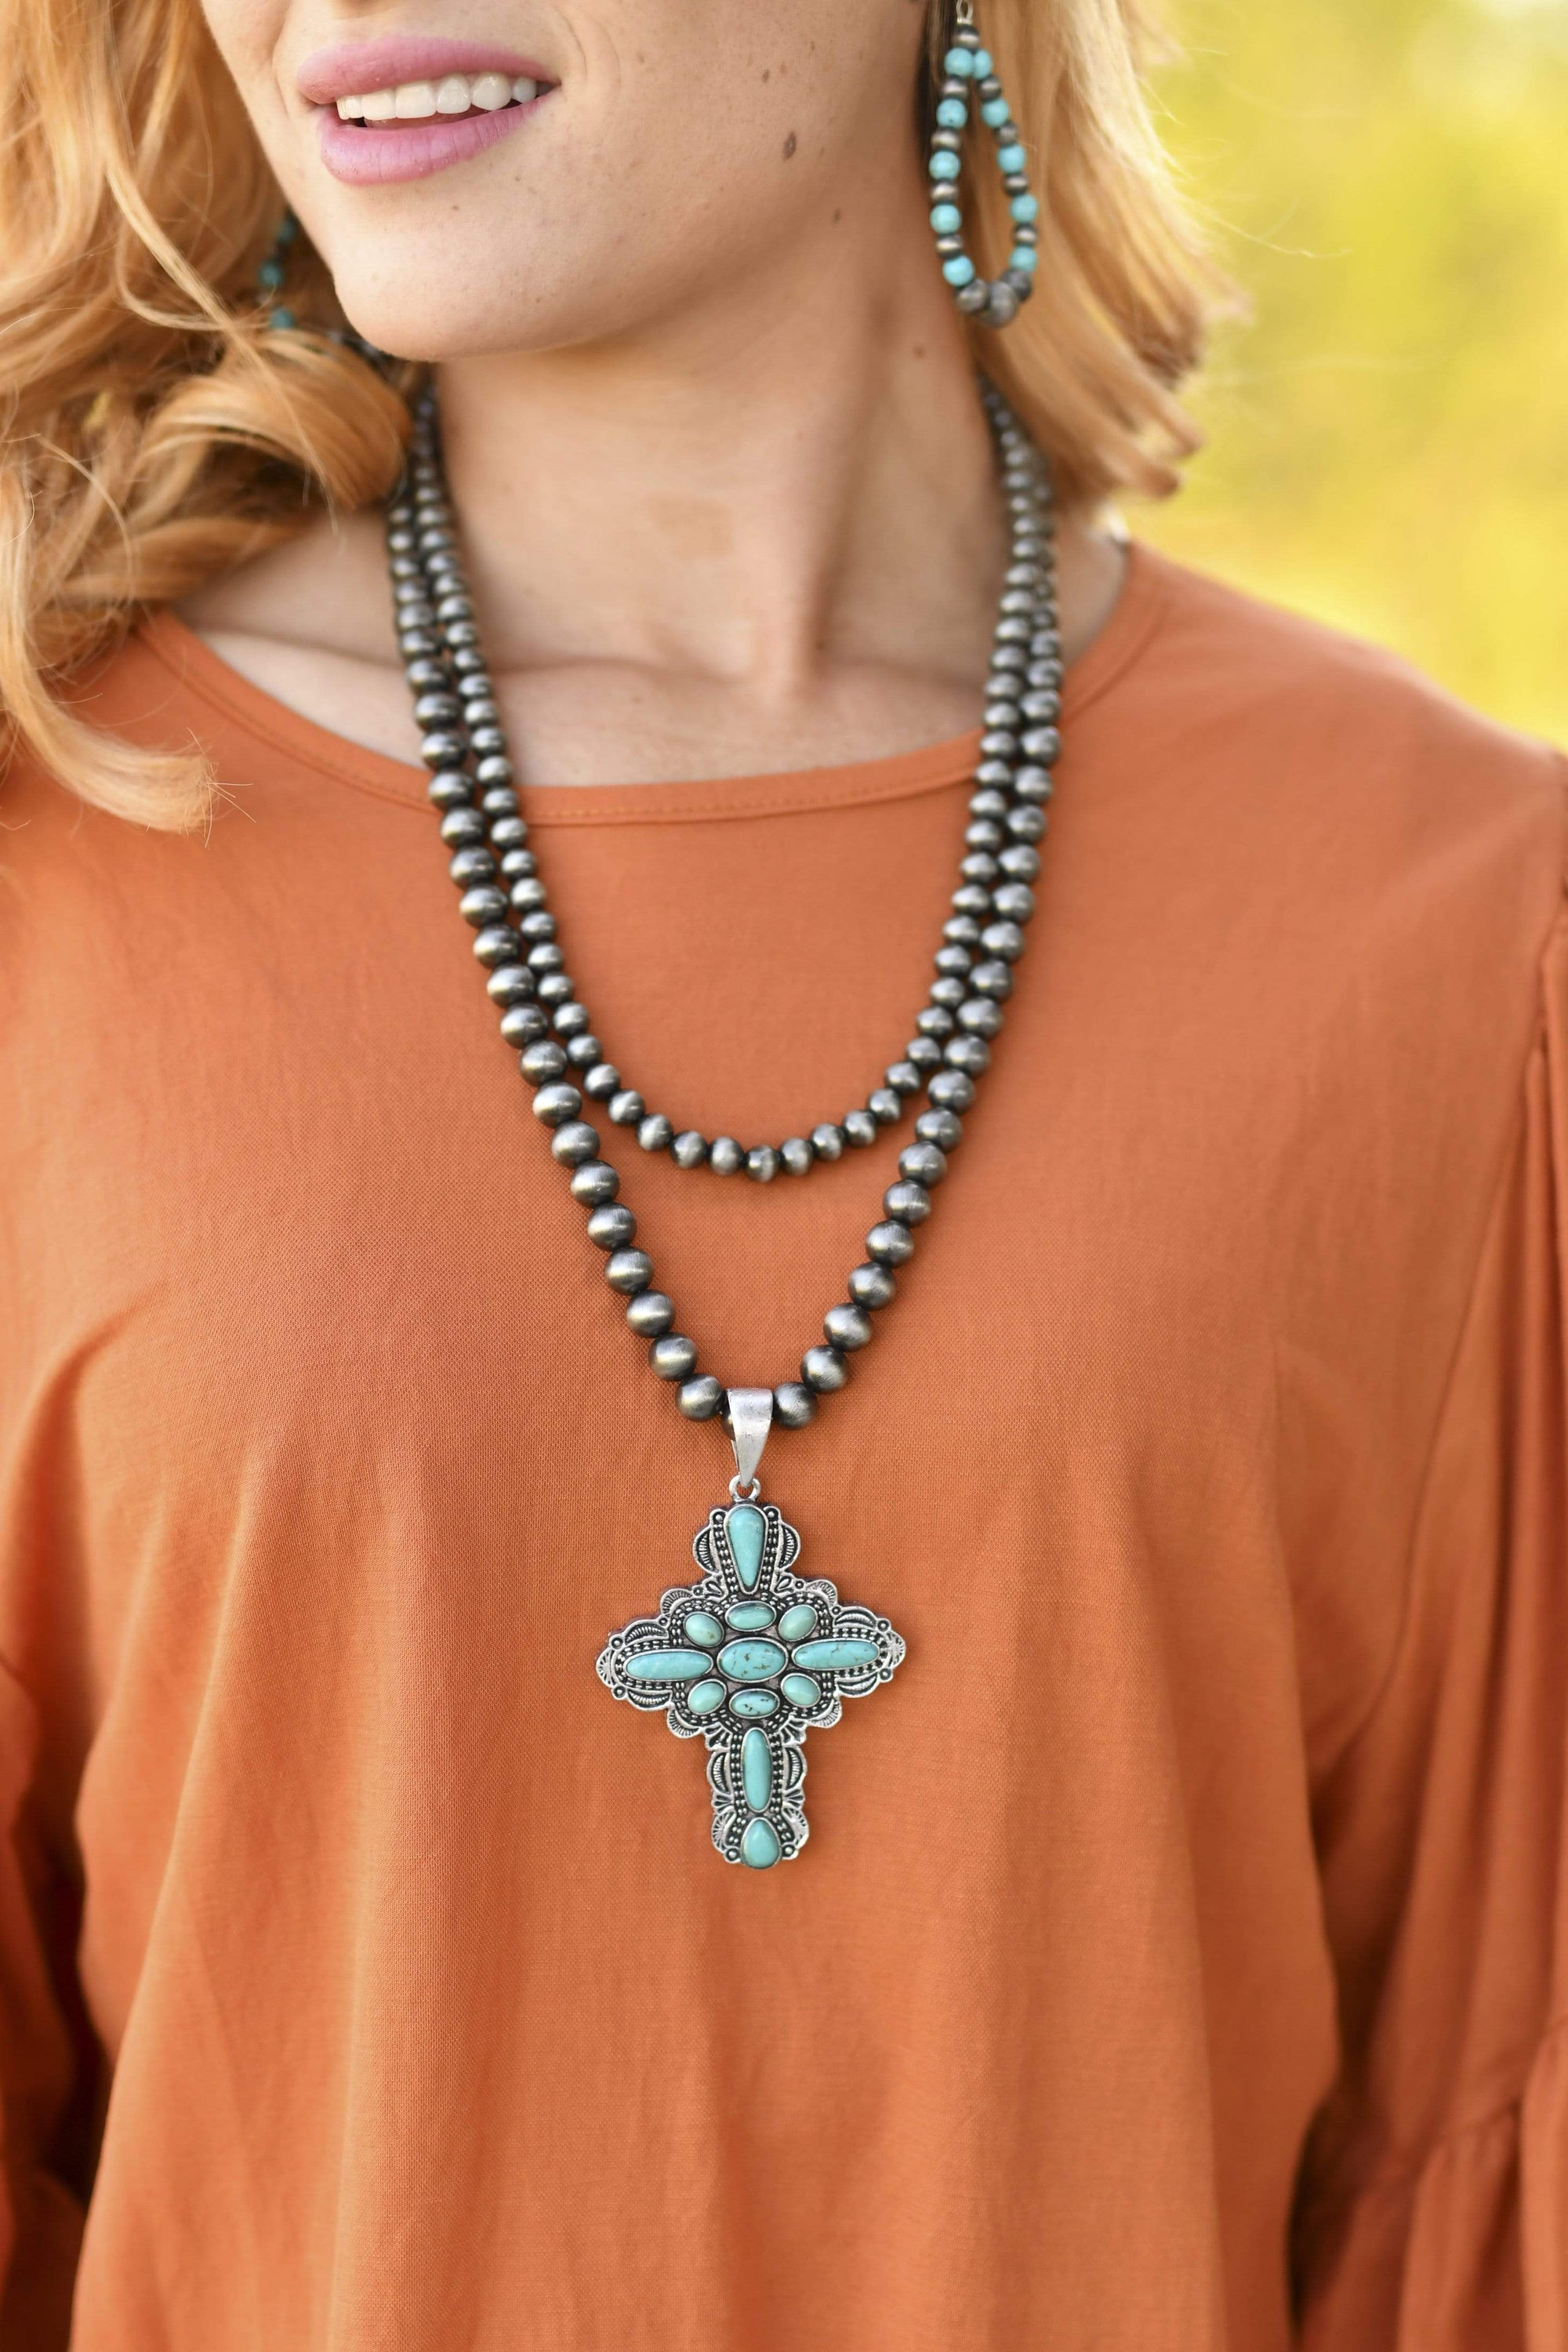 Accessorize In Style Fashion Necklaces Copy of Fashion 2 Strand Turquoise Cross Necklace